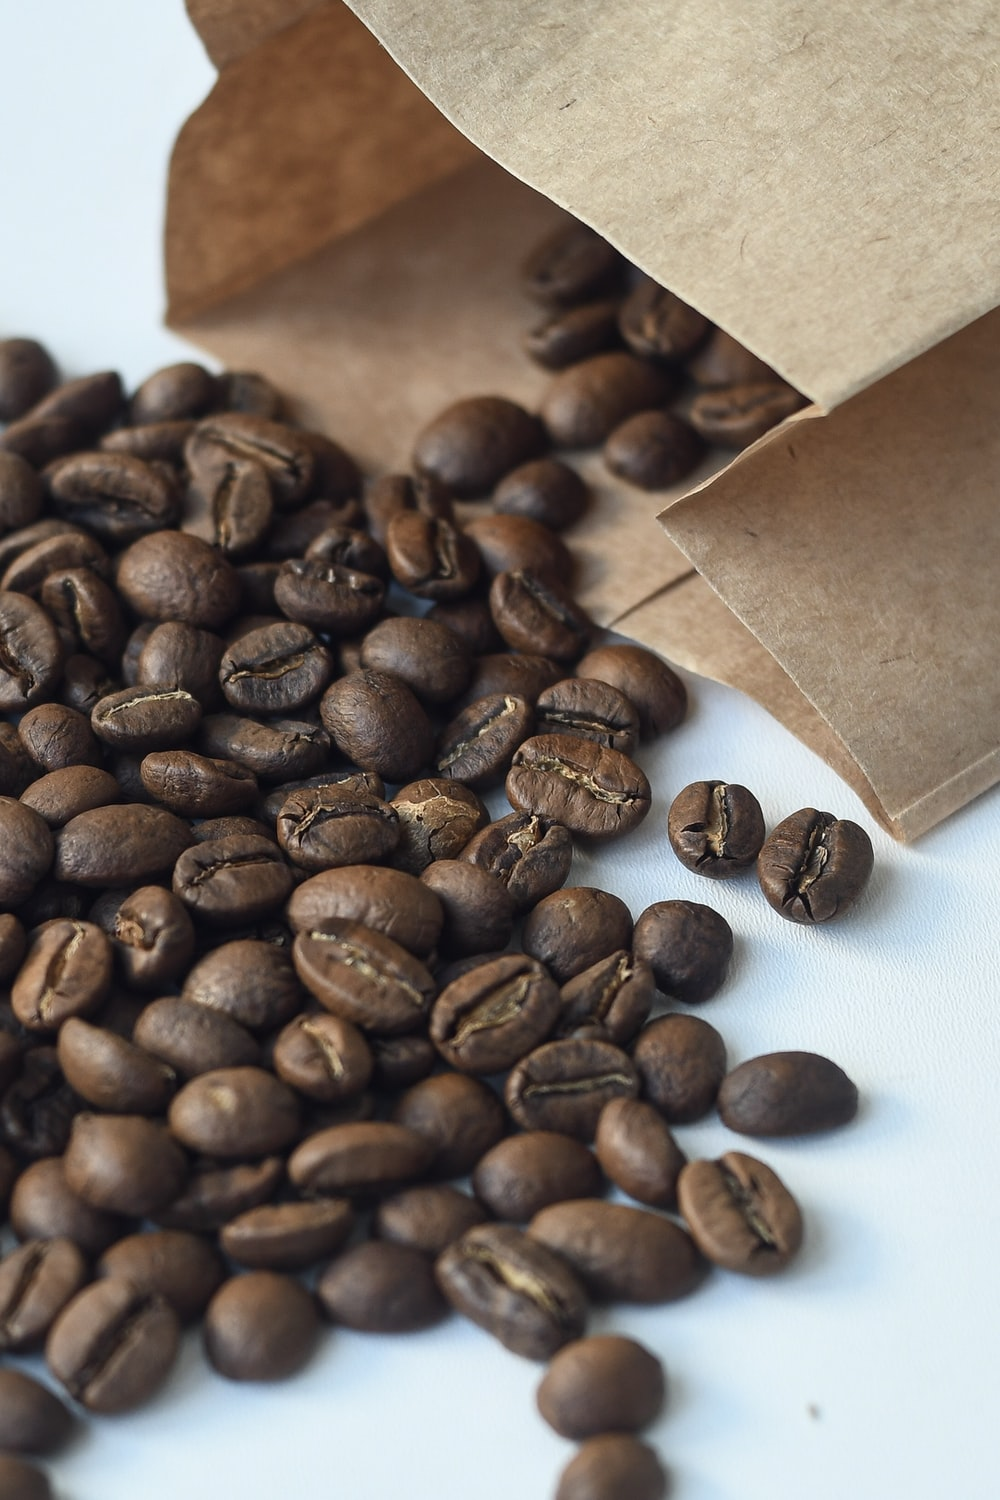 coffee beans on white surface and in paper bag on it's side